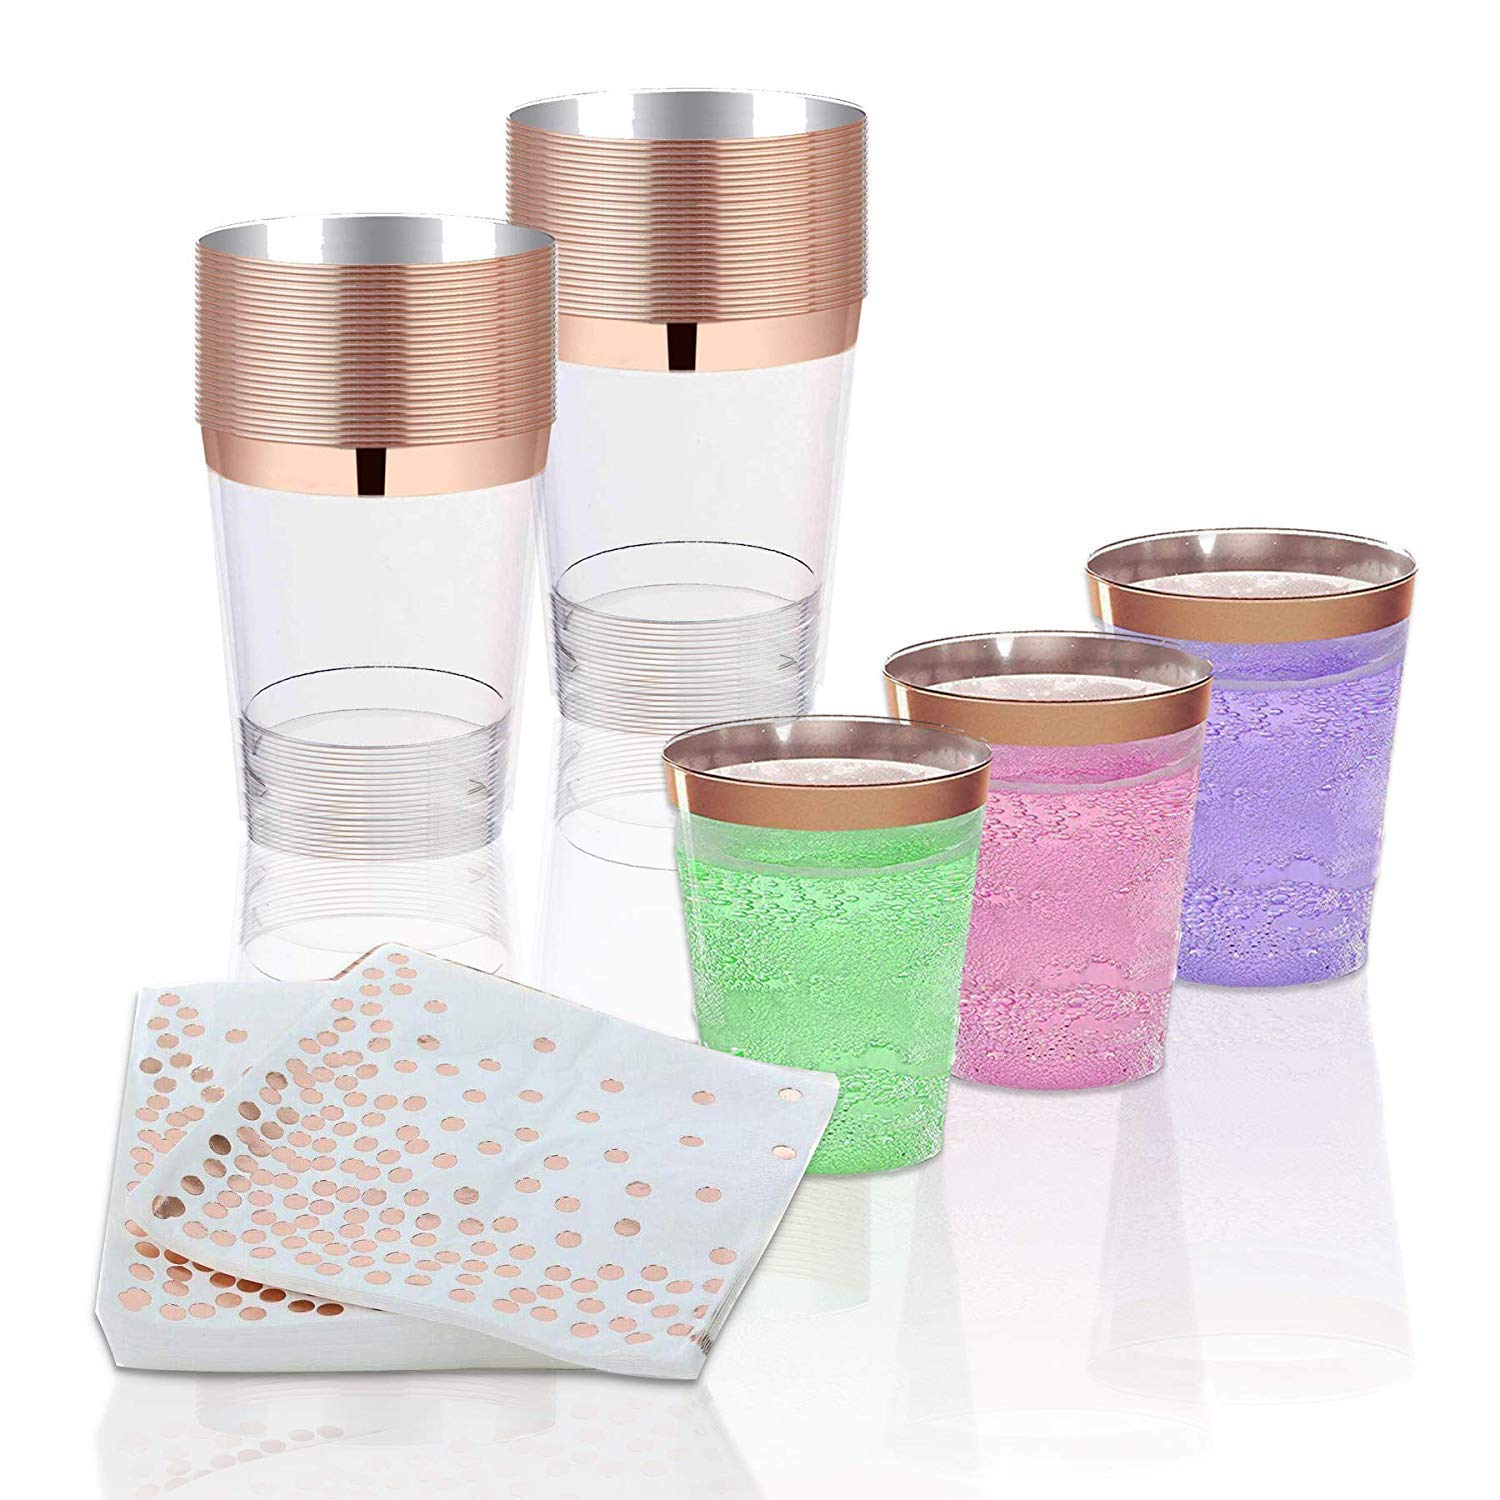 H3 Innovations-200pc Rose Gold Plastic Plates, Rose Gold Silverware, Rose Gold Plates, Rose Gold Cups, Rose Gold Napkins, Rose Gold Straws, Rose Gold Disposable Dinnerware by H3 Innovations (Image #3)